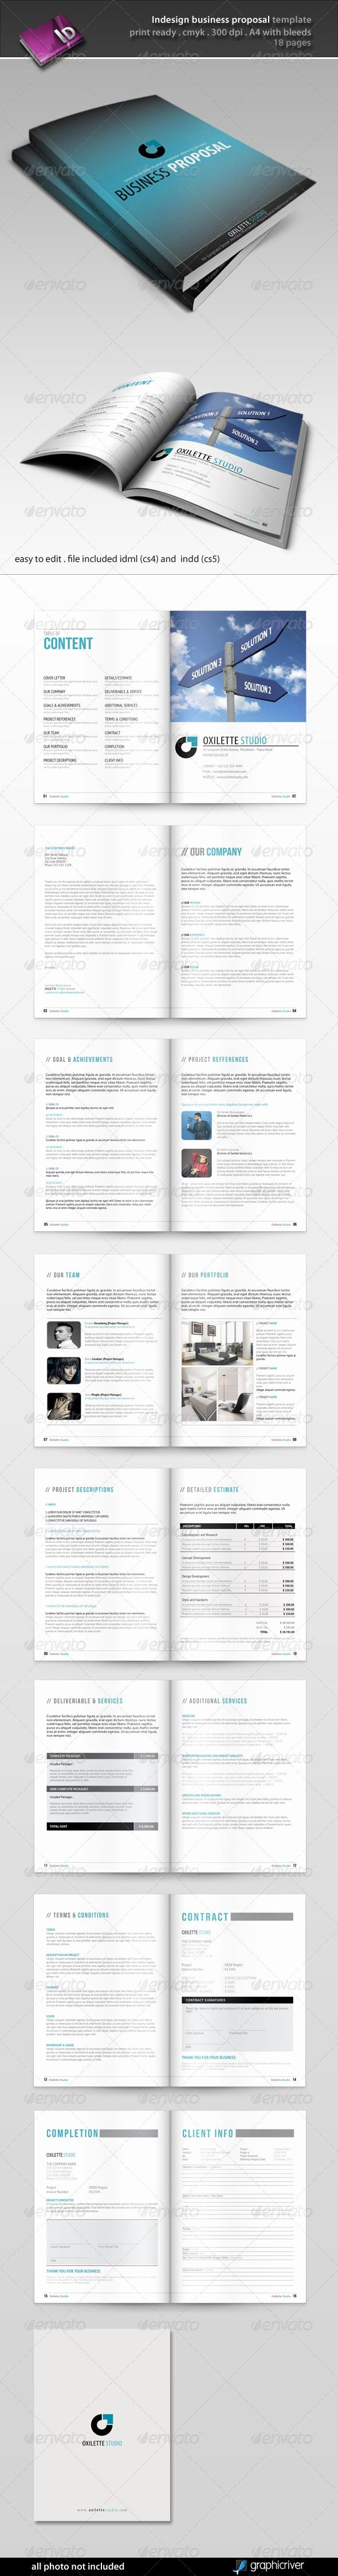 Indesign Business Plan Template Awesome Indesign Business Proposal Template